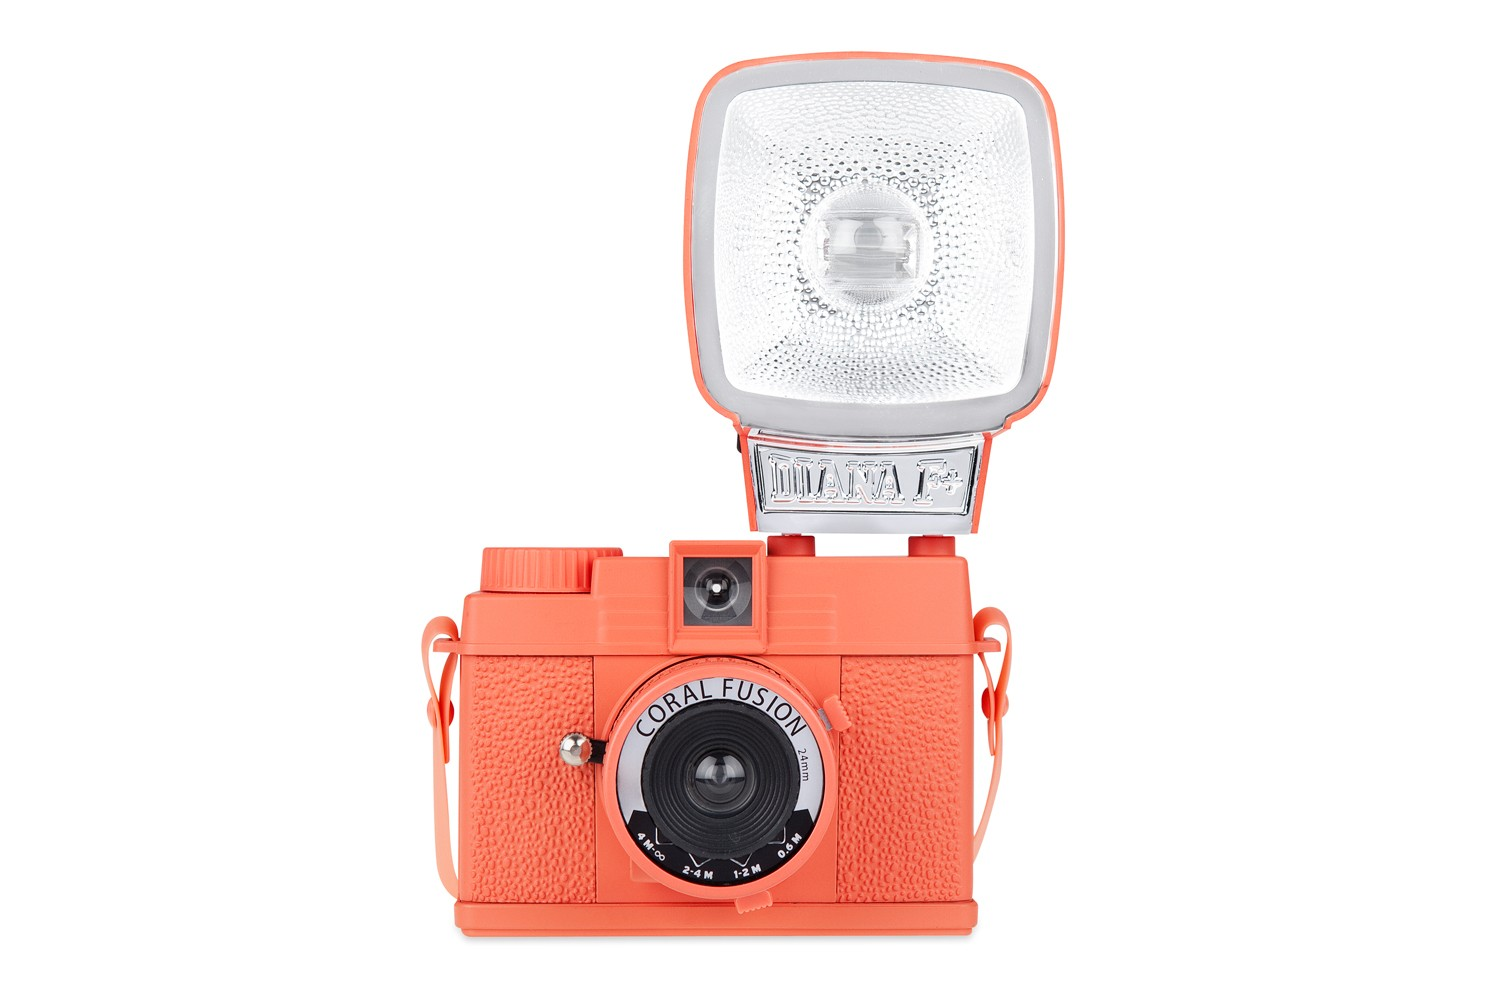 Diana Mini and Flash Coral Fusion